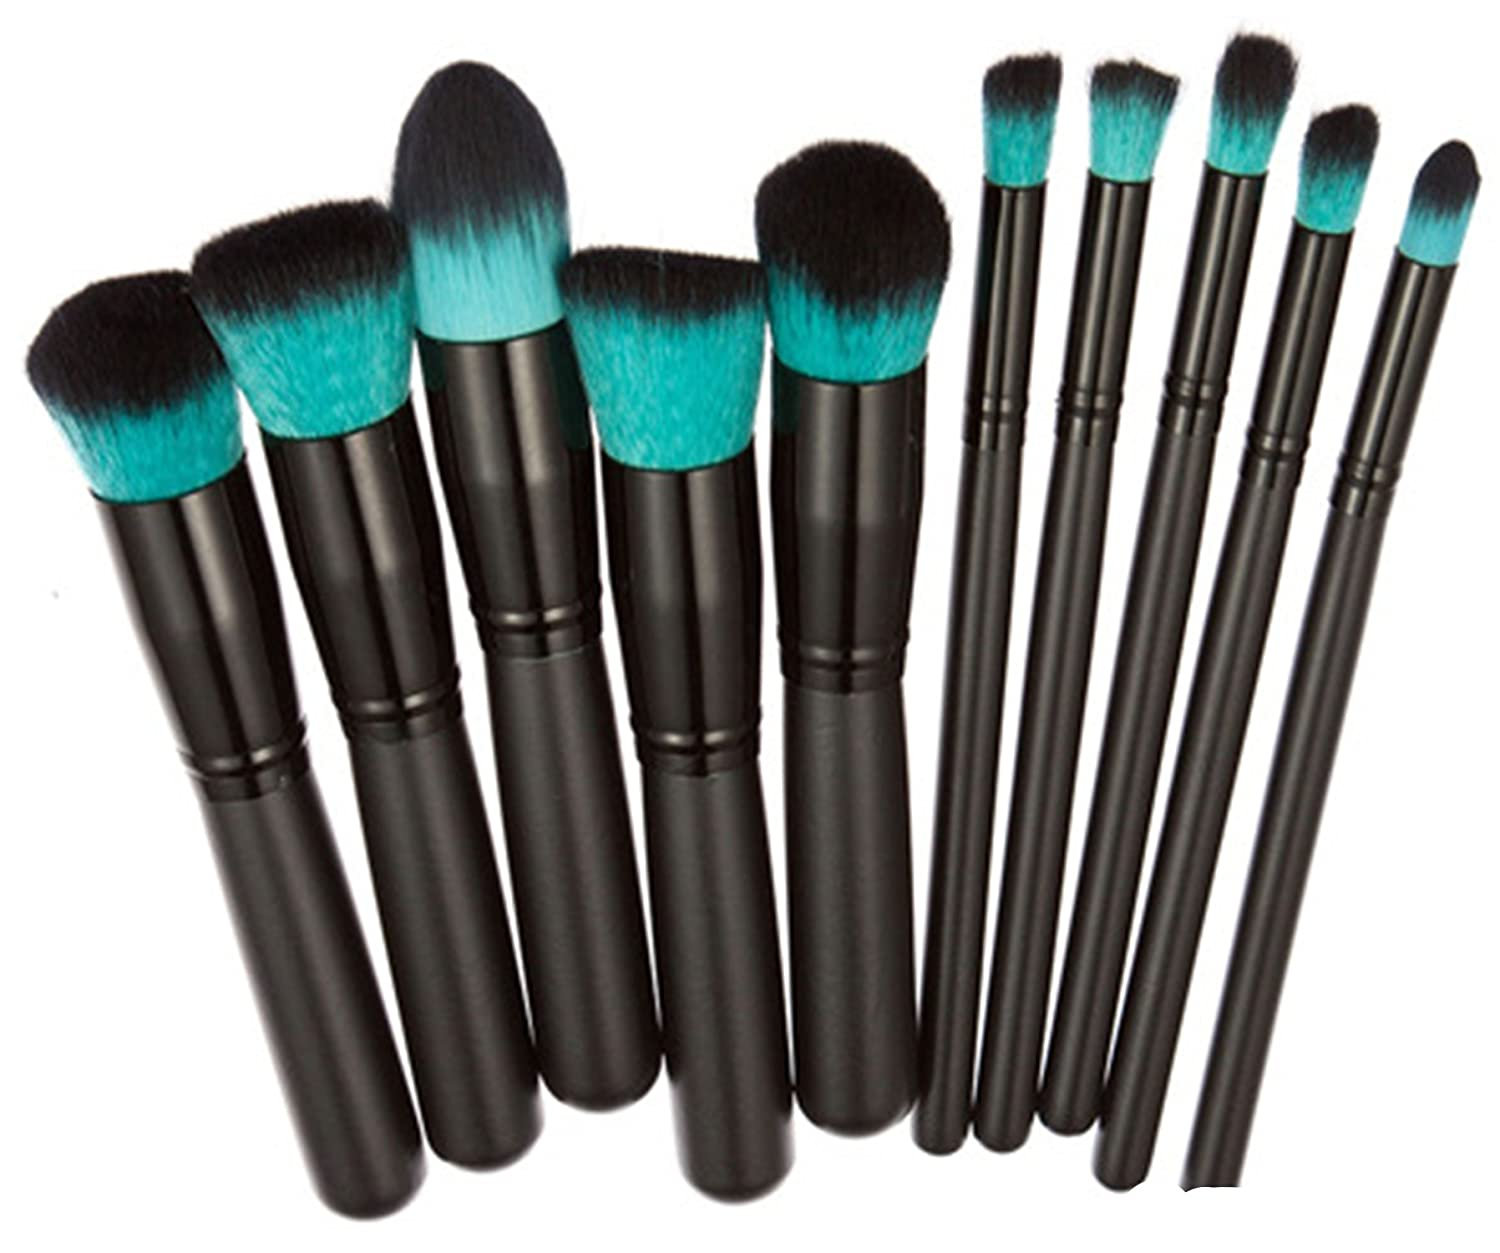 Amazon.com: Ruikey 10pcs Black Color Makeup Brushes Set For Girl Birthday Gift,Christmas Gift for Women Cosmetic Brush Kit: Beauty